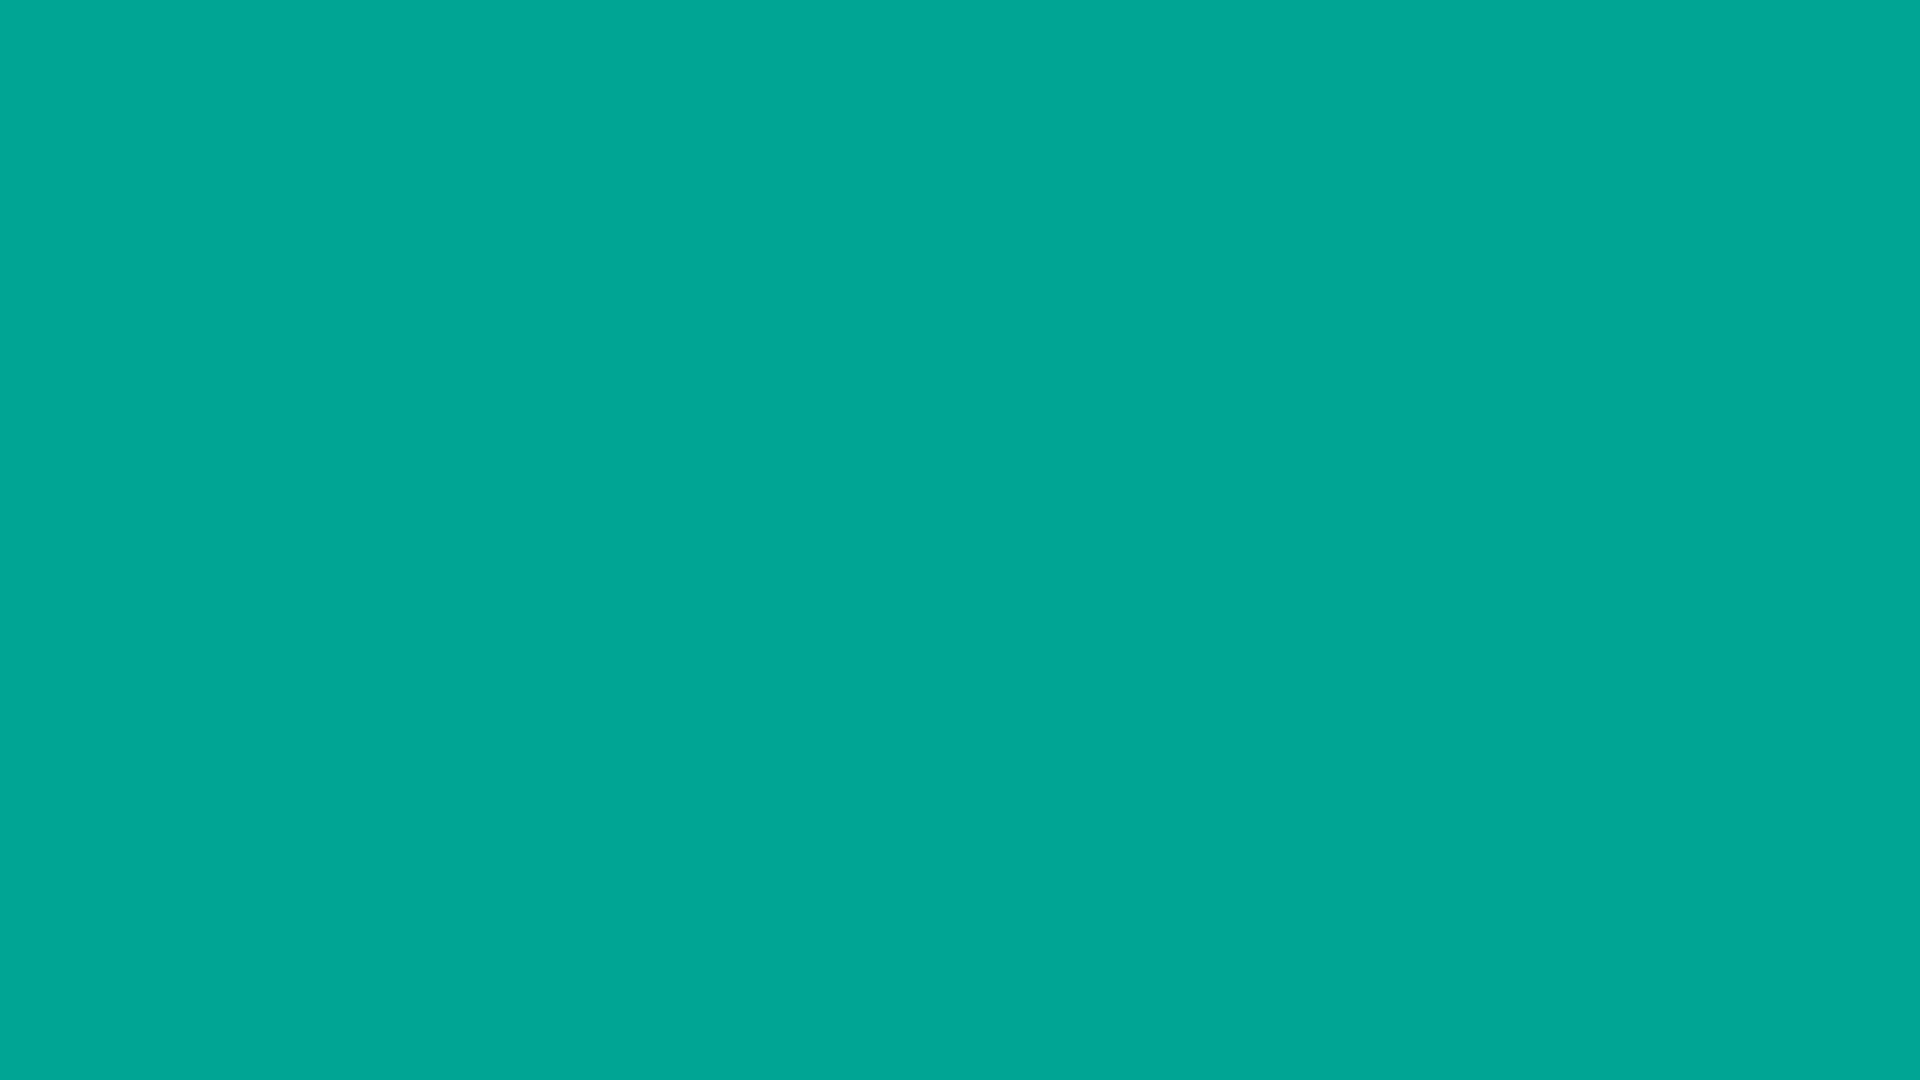 1920x1080 Persian Green Solid Color Background